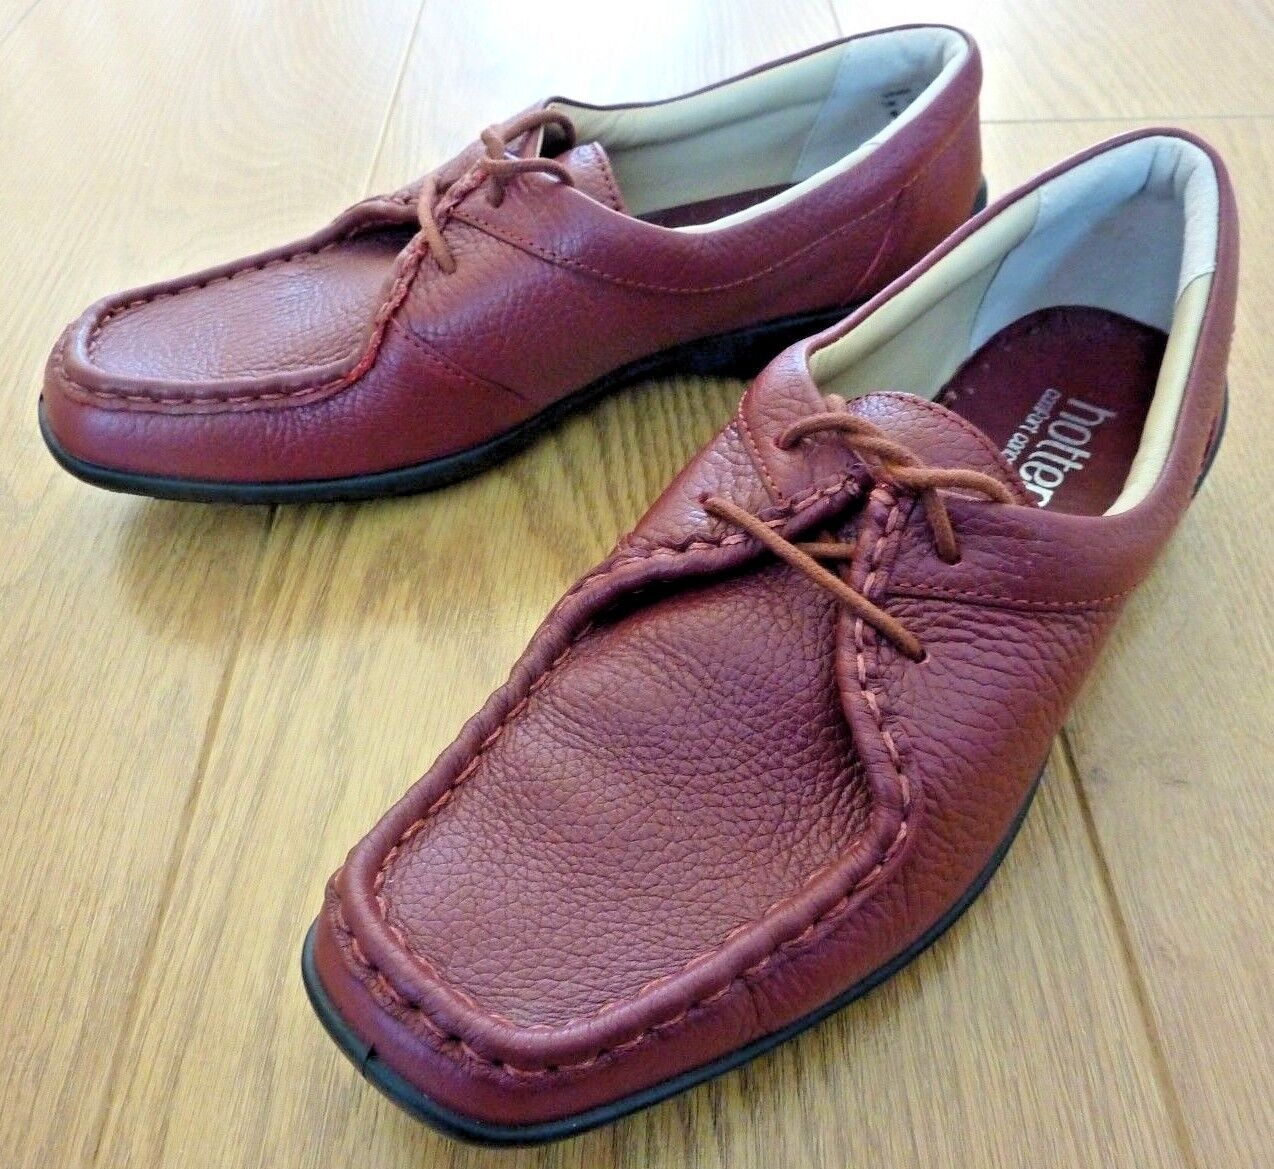 Hotter VANA Ladies Lace up Burgundy Red Leather shoes Size UK 6 S EU 39